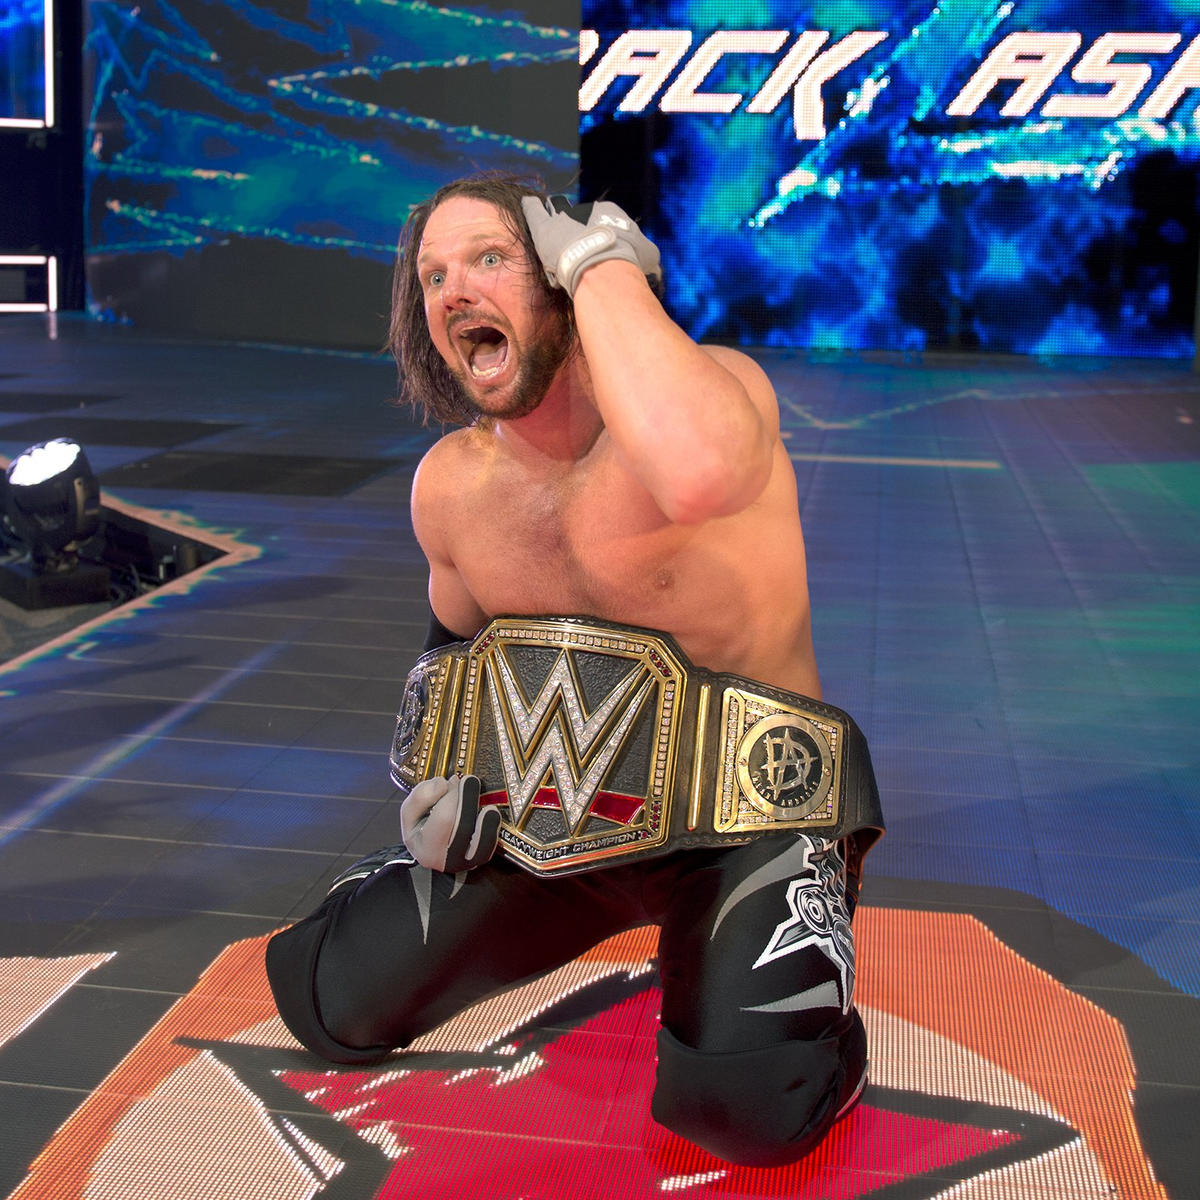 AJ Styles wins WWE Championship: Backlash 2016